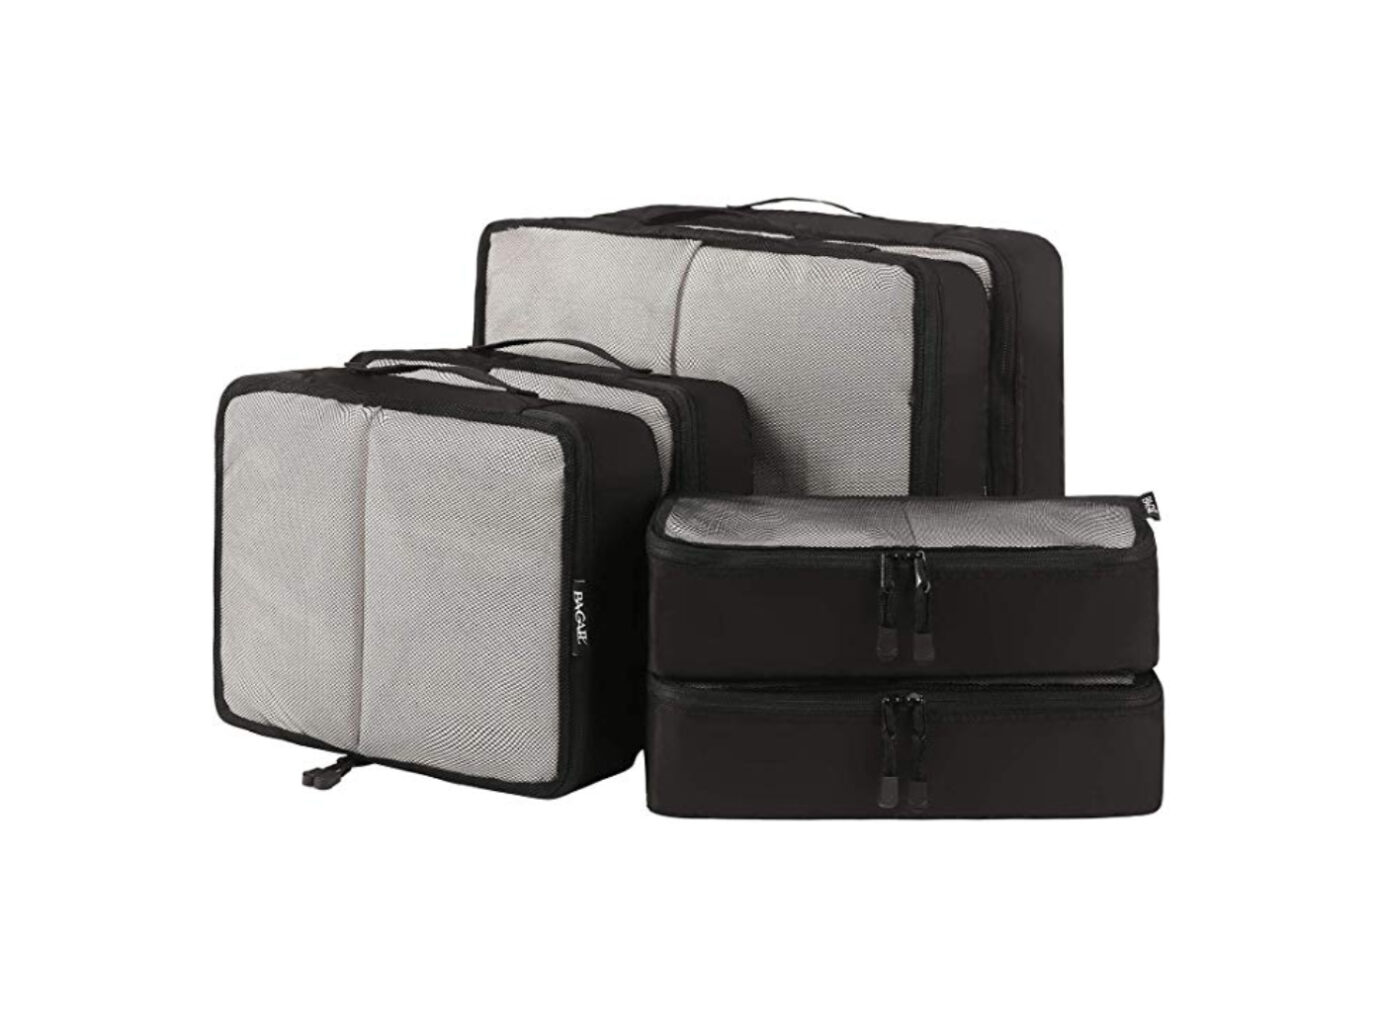 6 Set Packing Cubes 6 Various Sizes Travel Luggage Packing Organizers Durable